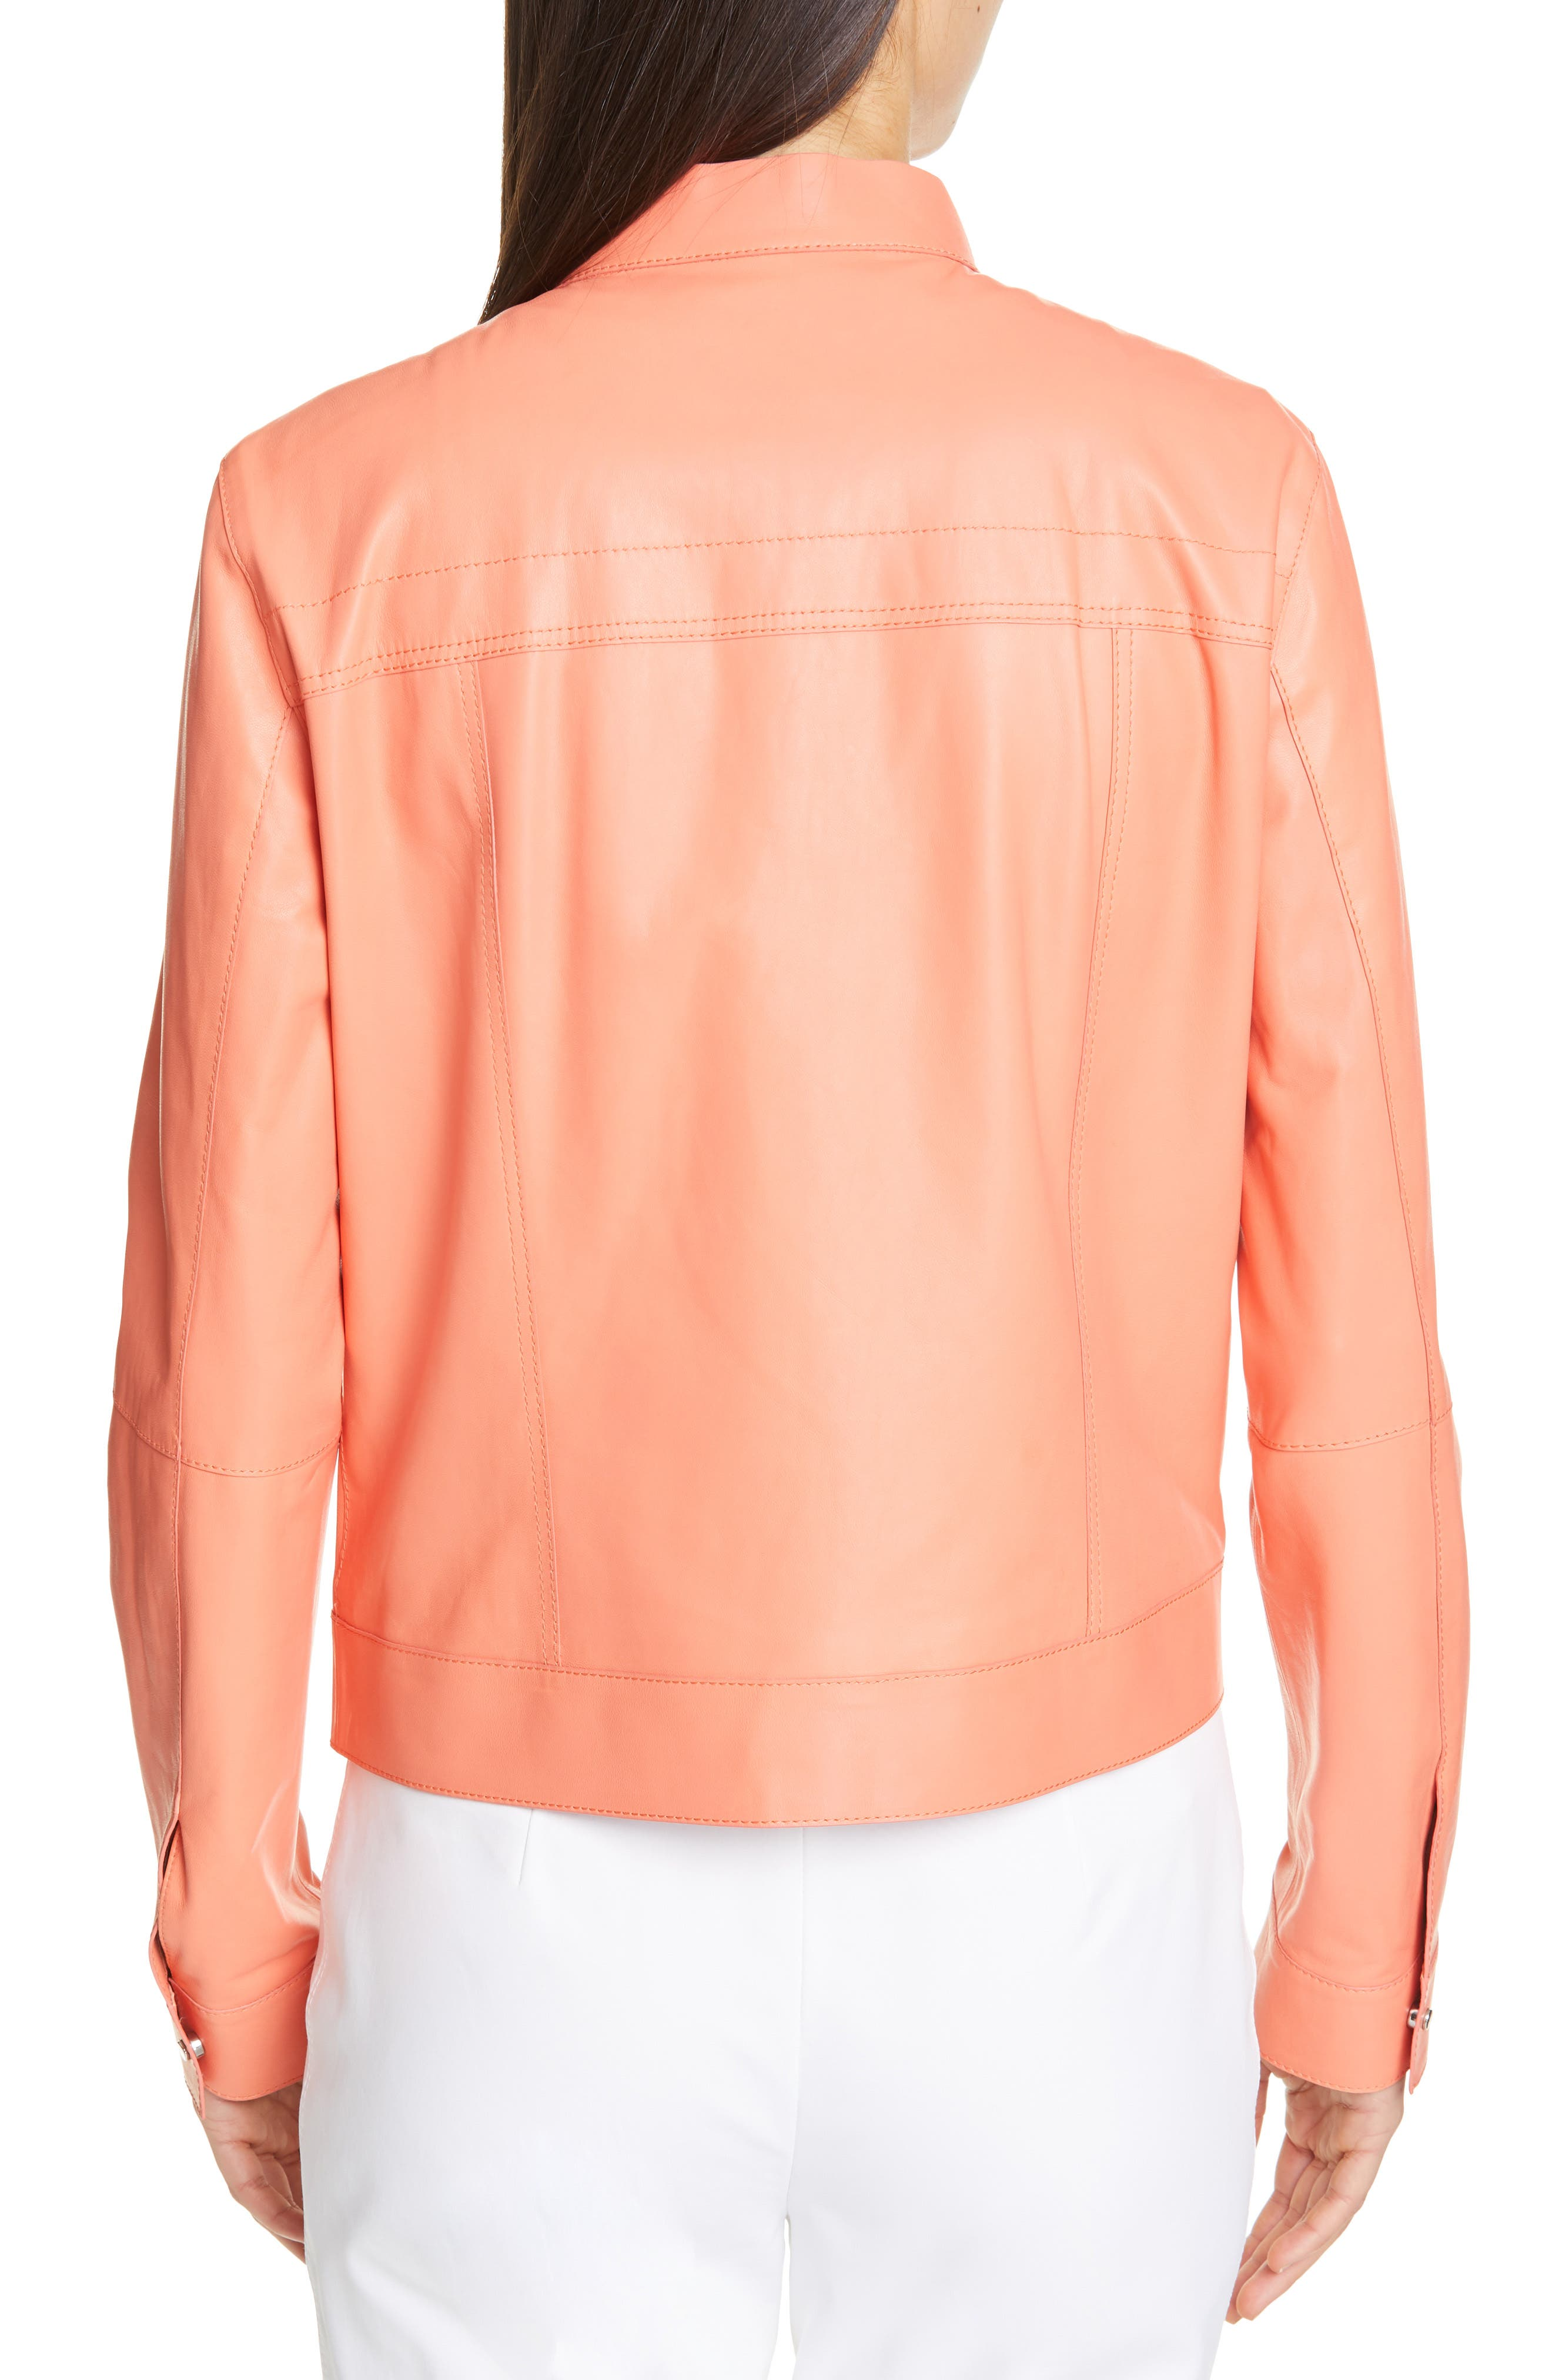 LAFAYETTE 148 NEW YORK, Galicia Leather Jacket, Alternate thumbnail 2, color, PEACH ROSE